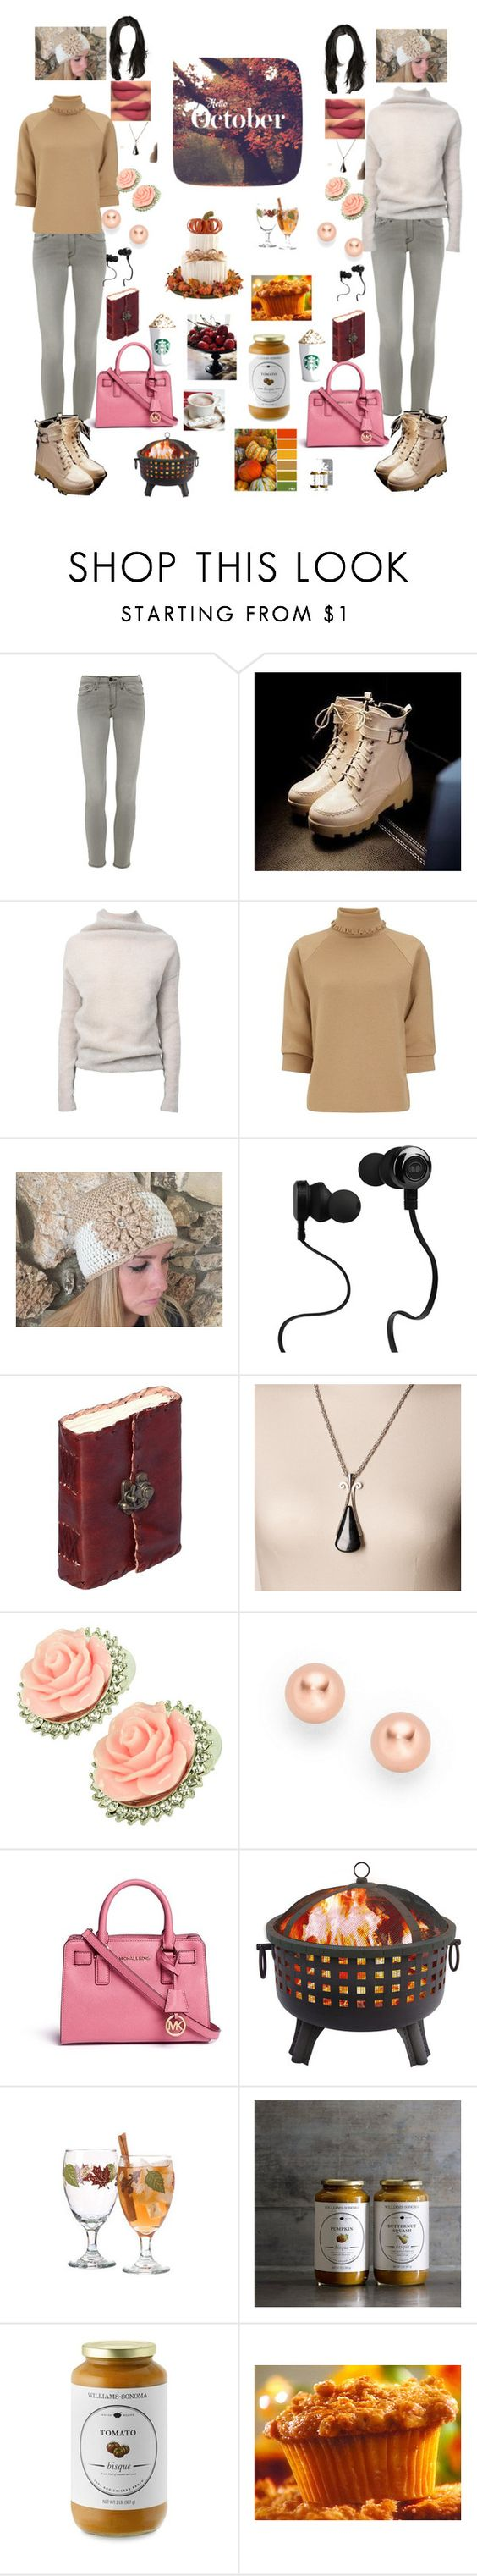 """me and my best friend Lolita sarif ready for fall! ☕☕"" by roxiebolden ❤ liked on Polyvore featuring Frame Denim, JY Shoes, Rick Owens, J.W. Anderson, Monster, Avon, Kate Marie, FOSSIL, Michael Kors and Williams-Sonoma"